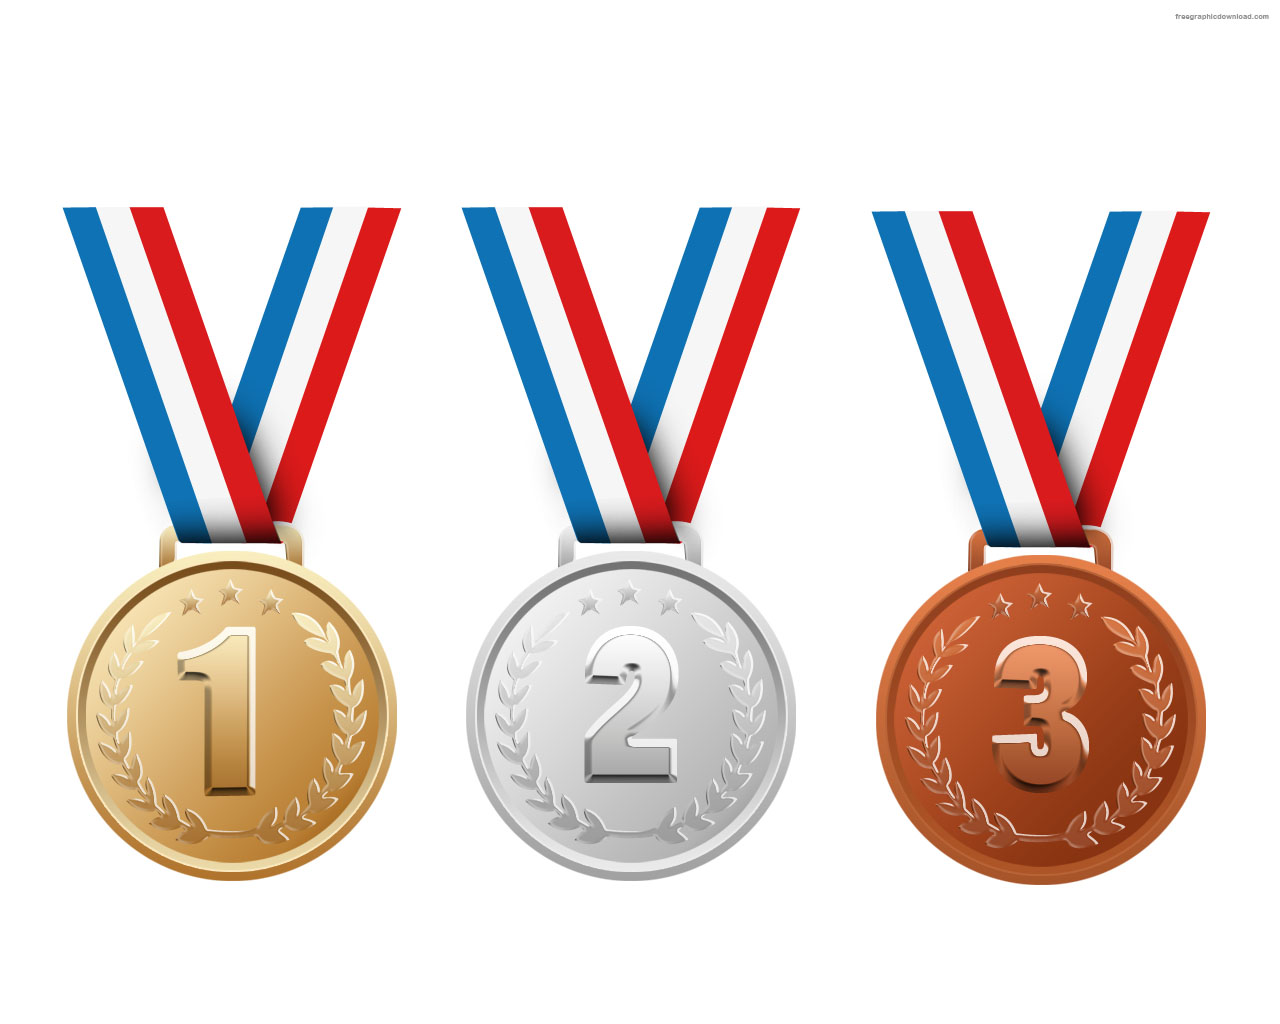 Olympic clipart medal, Olympic medal Transparent FREE for.